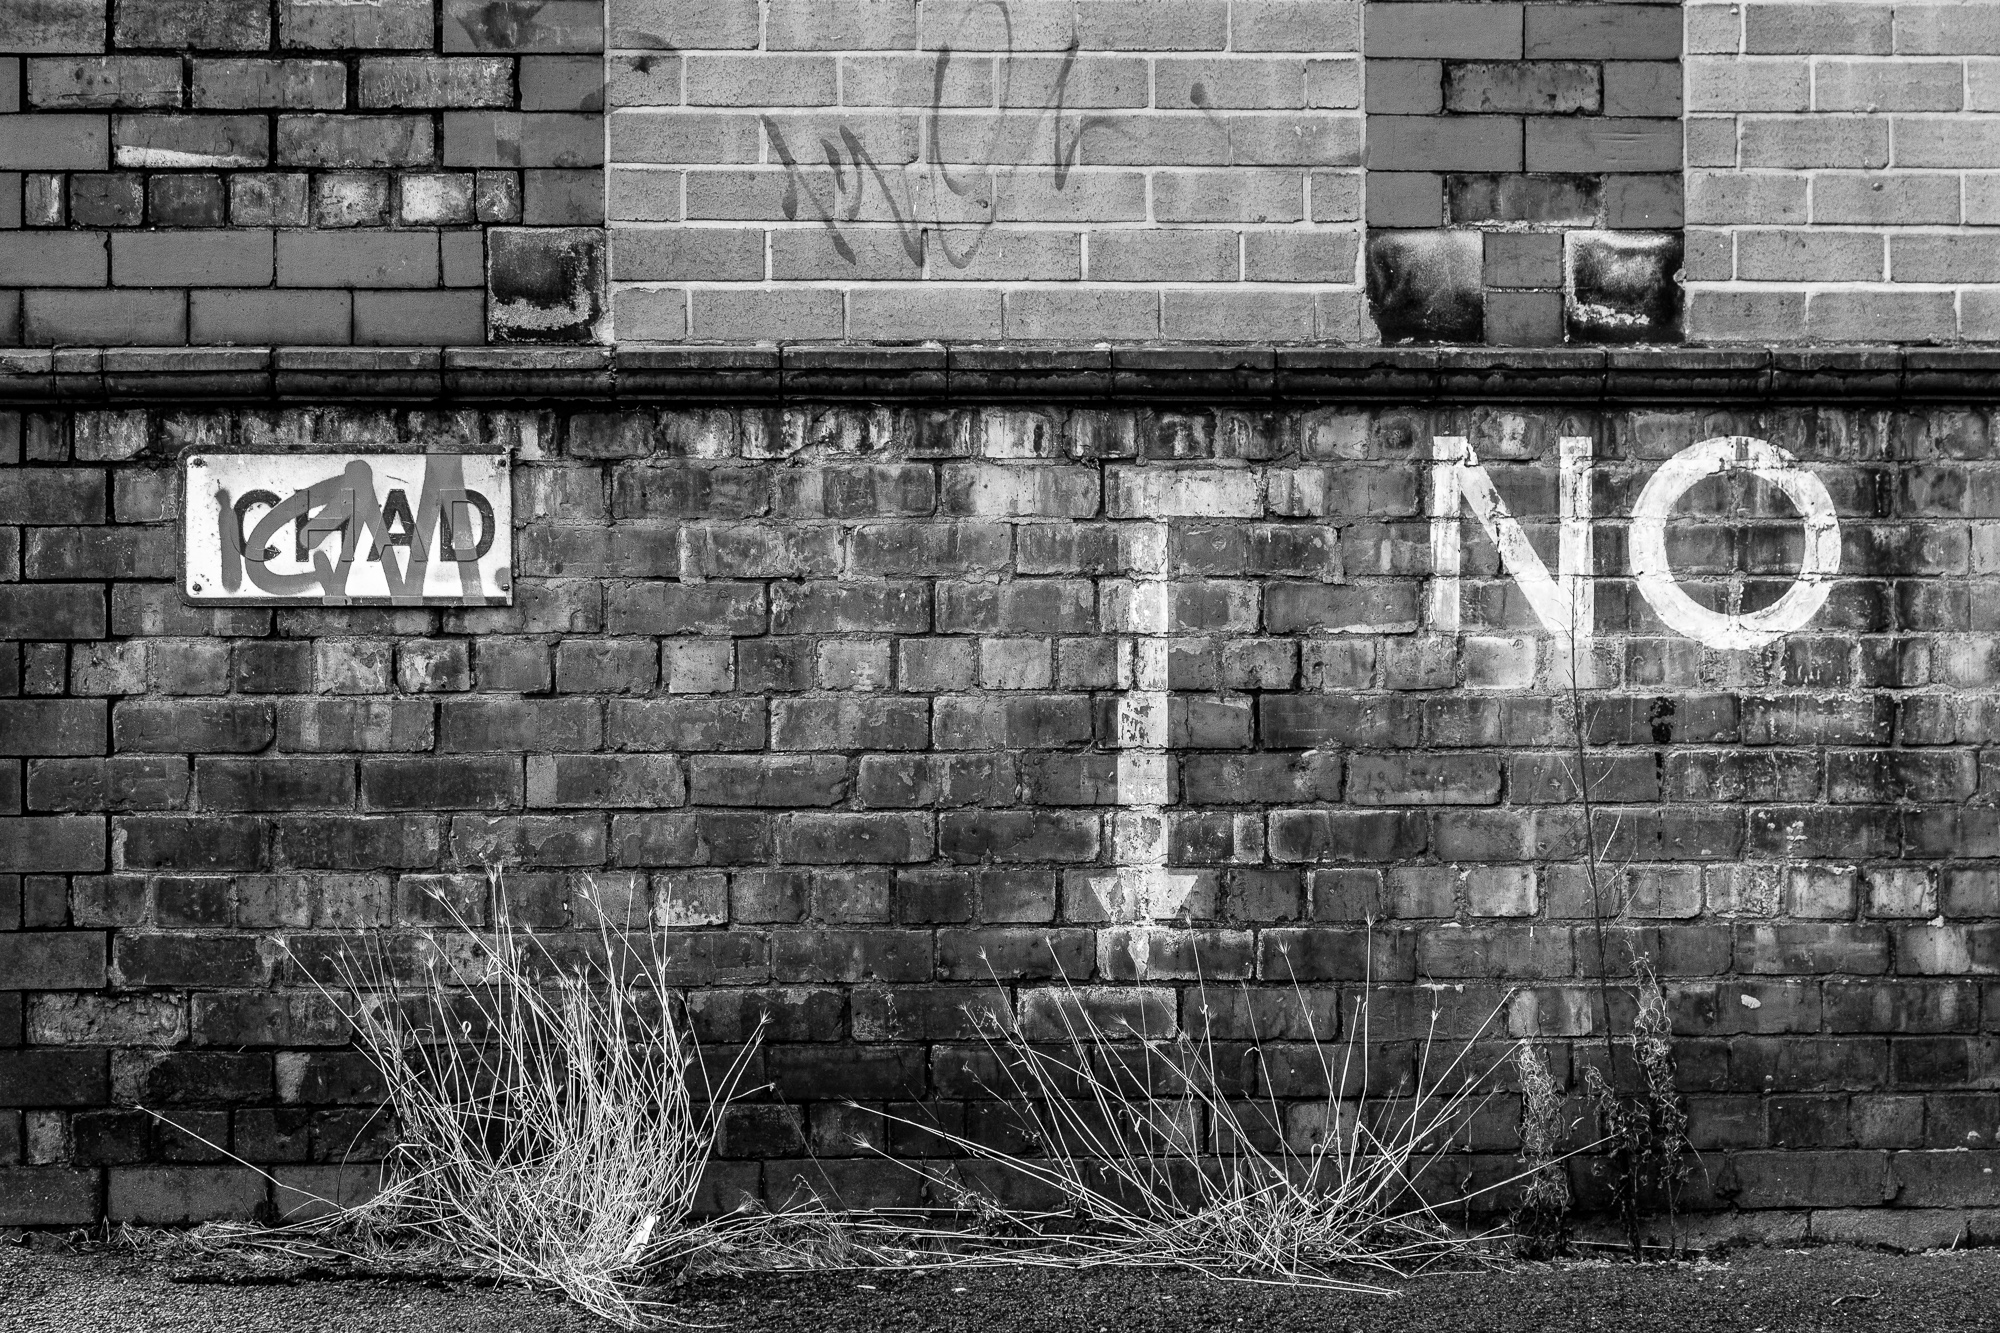 Chad. No! A study of brick walls in Manchester